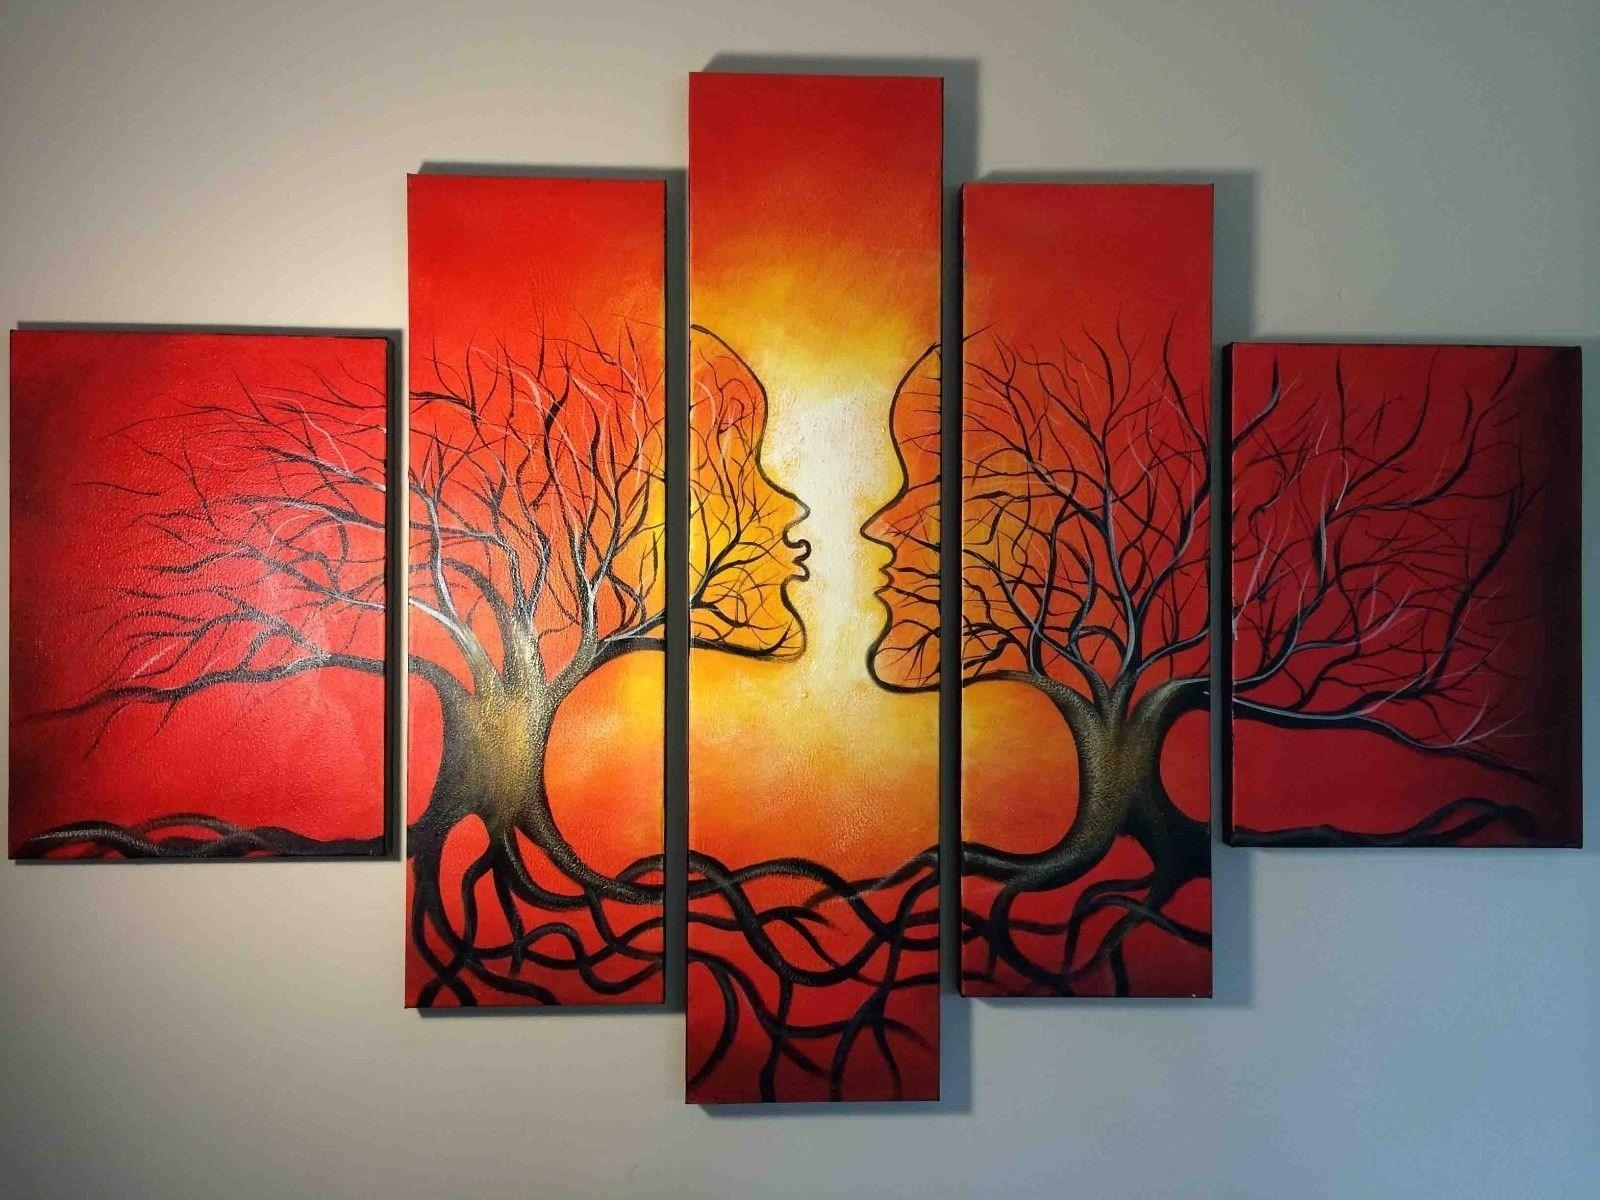 Wall Art Designs: Abstract Wall Art Red Abstract Oil Painting Intended For Best And Newest Modern Abstract Huge Oil Painting Wall Art (View 18 of 20)